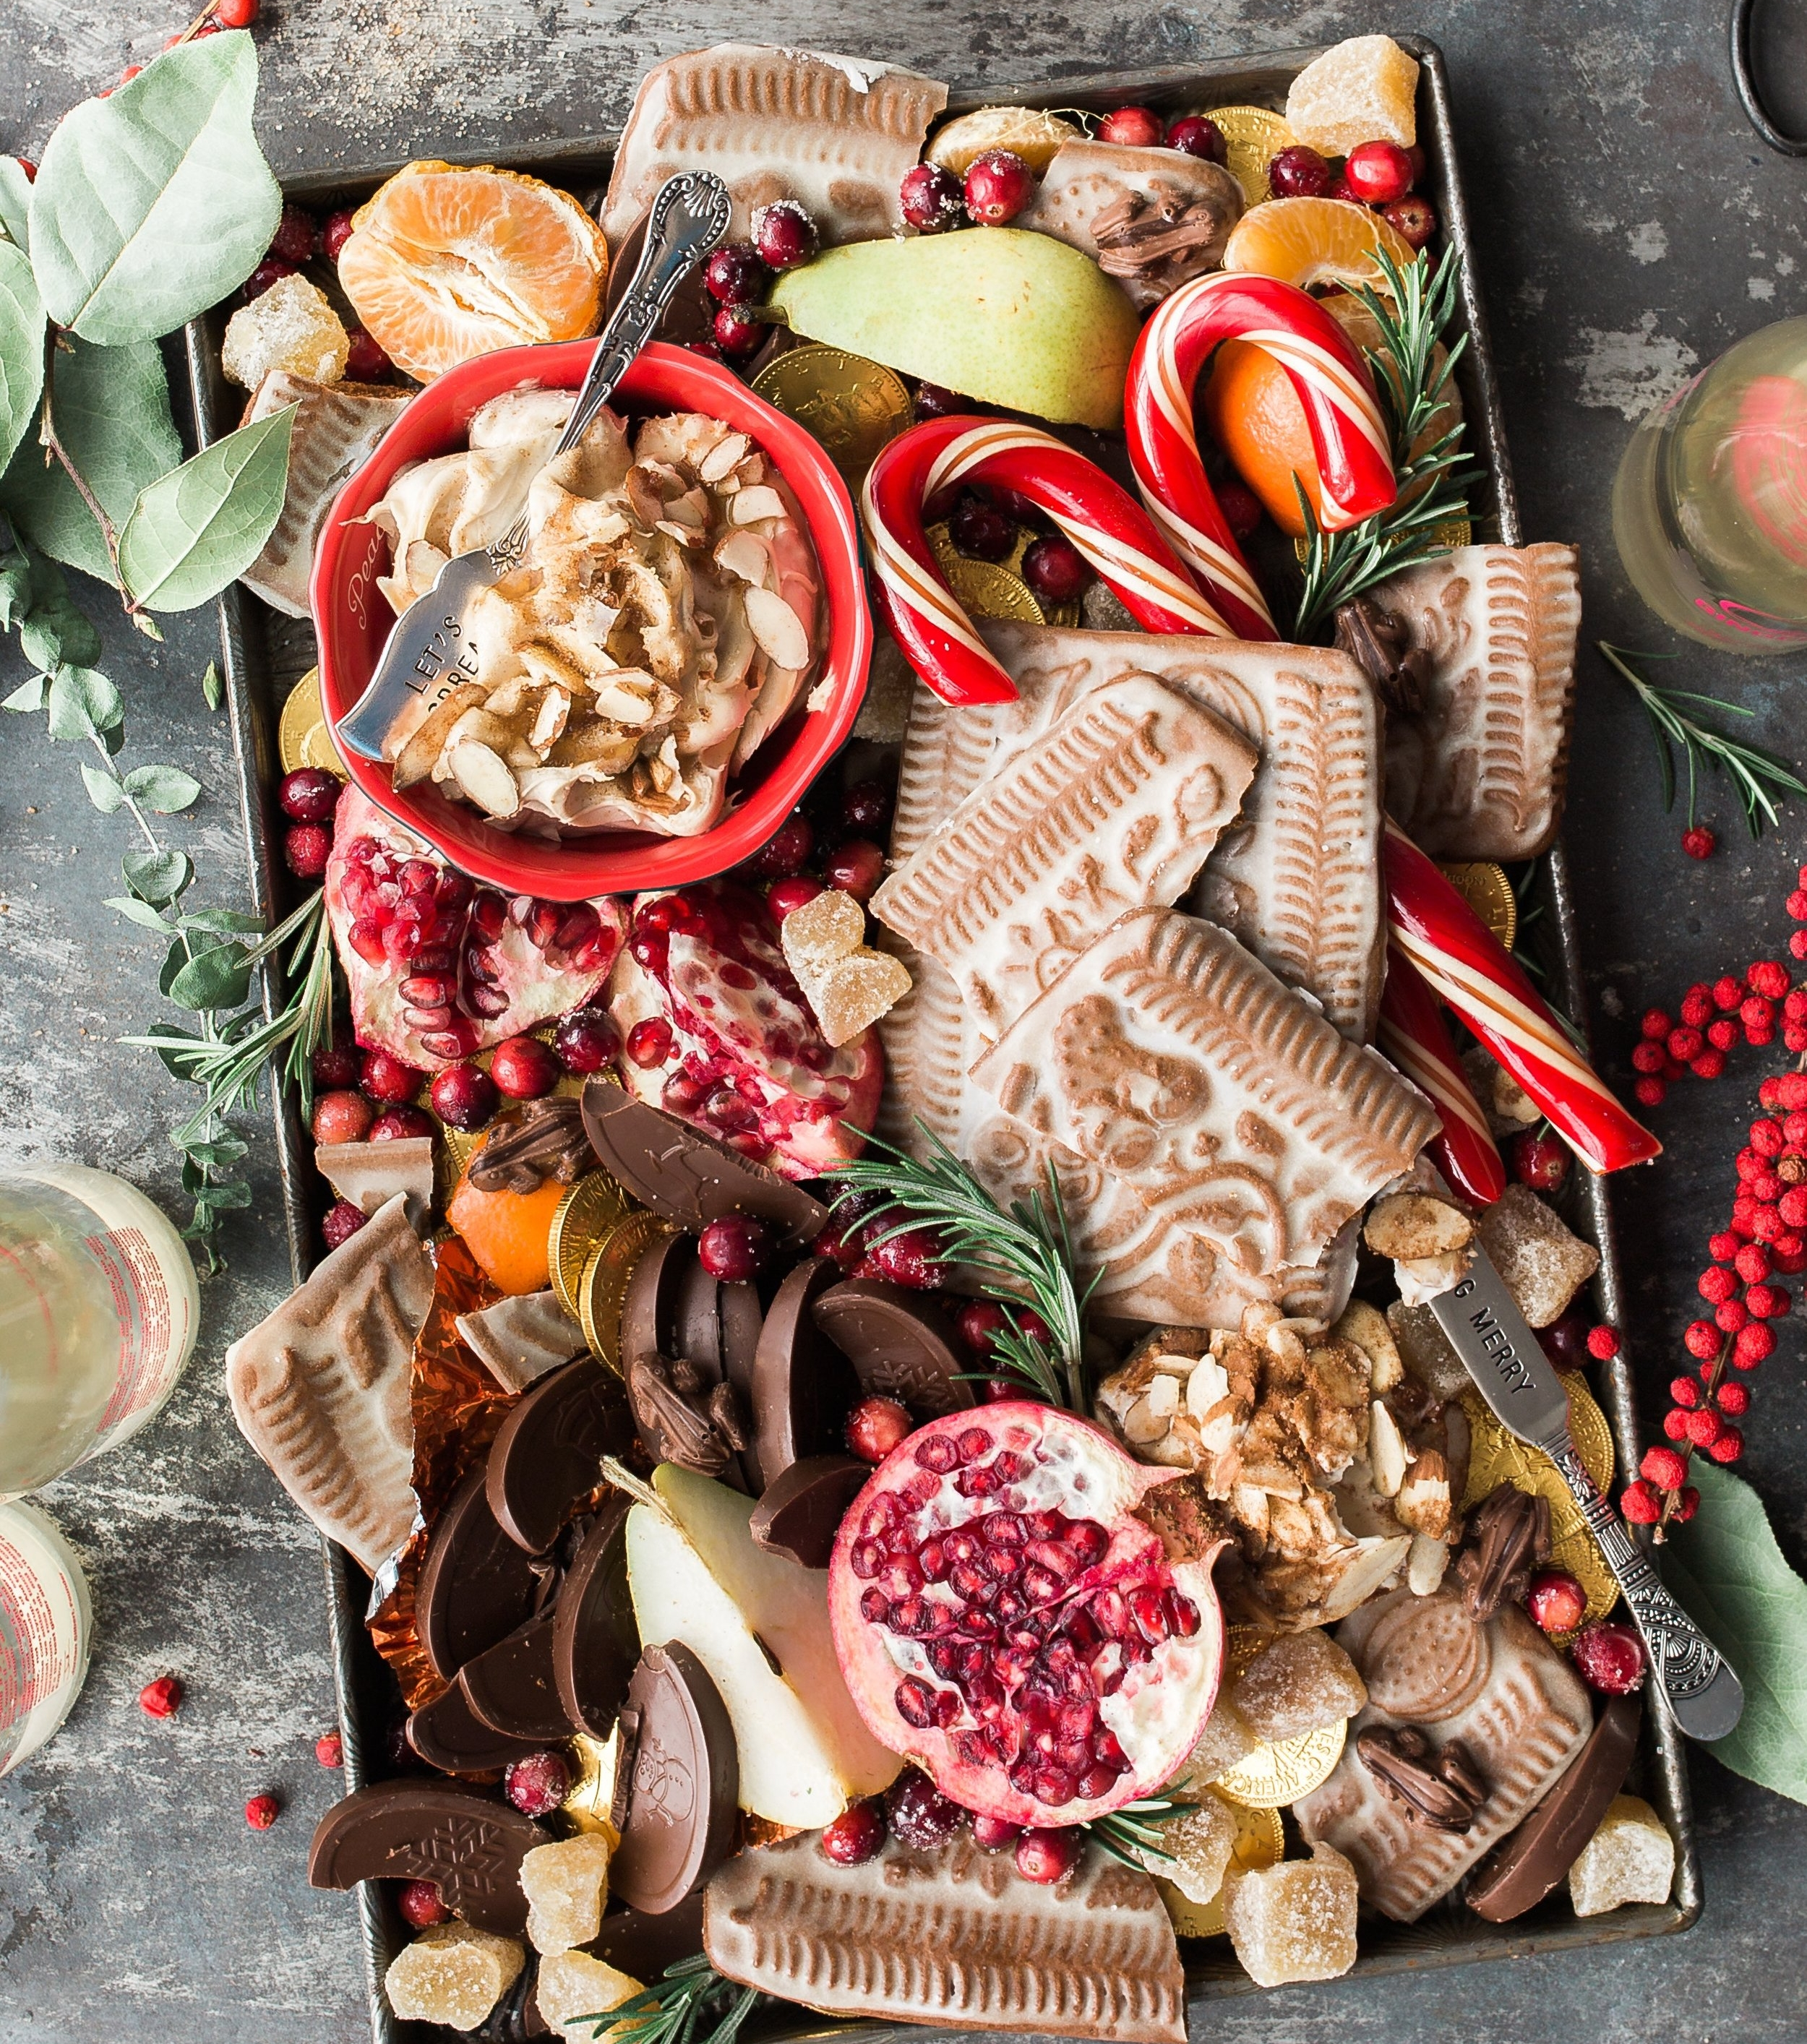 Beat the temptation to overeat during the holidays.